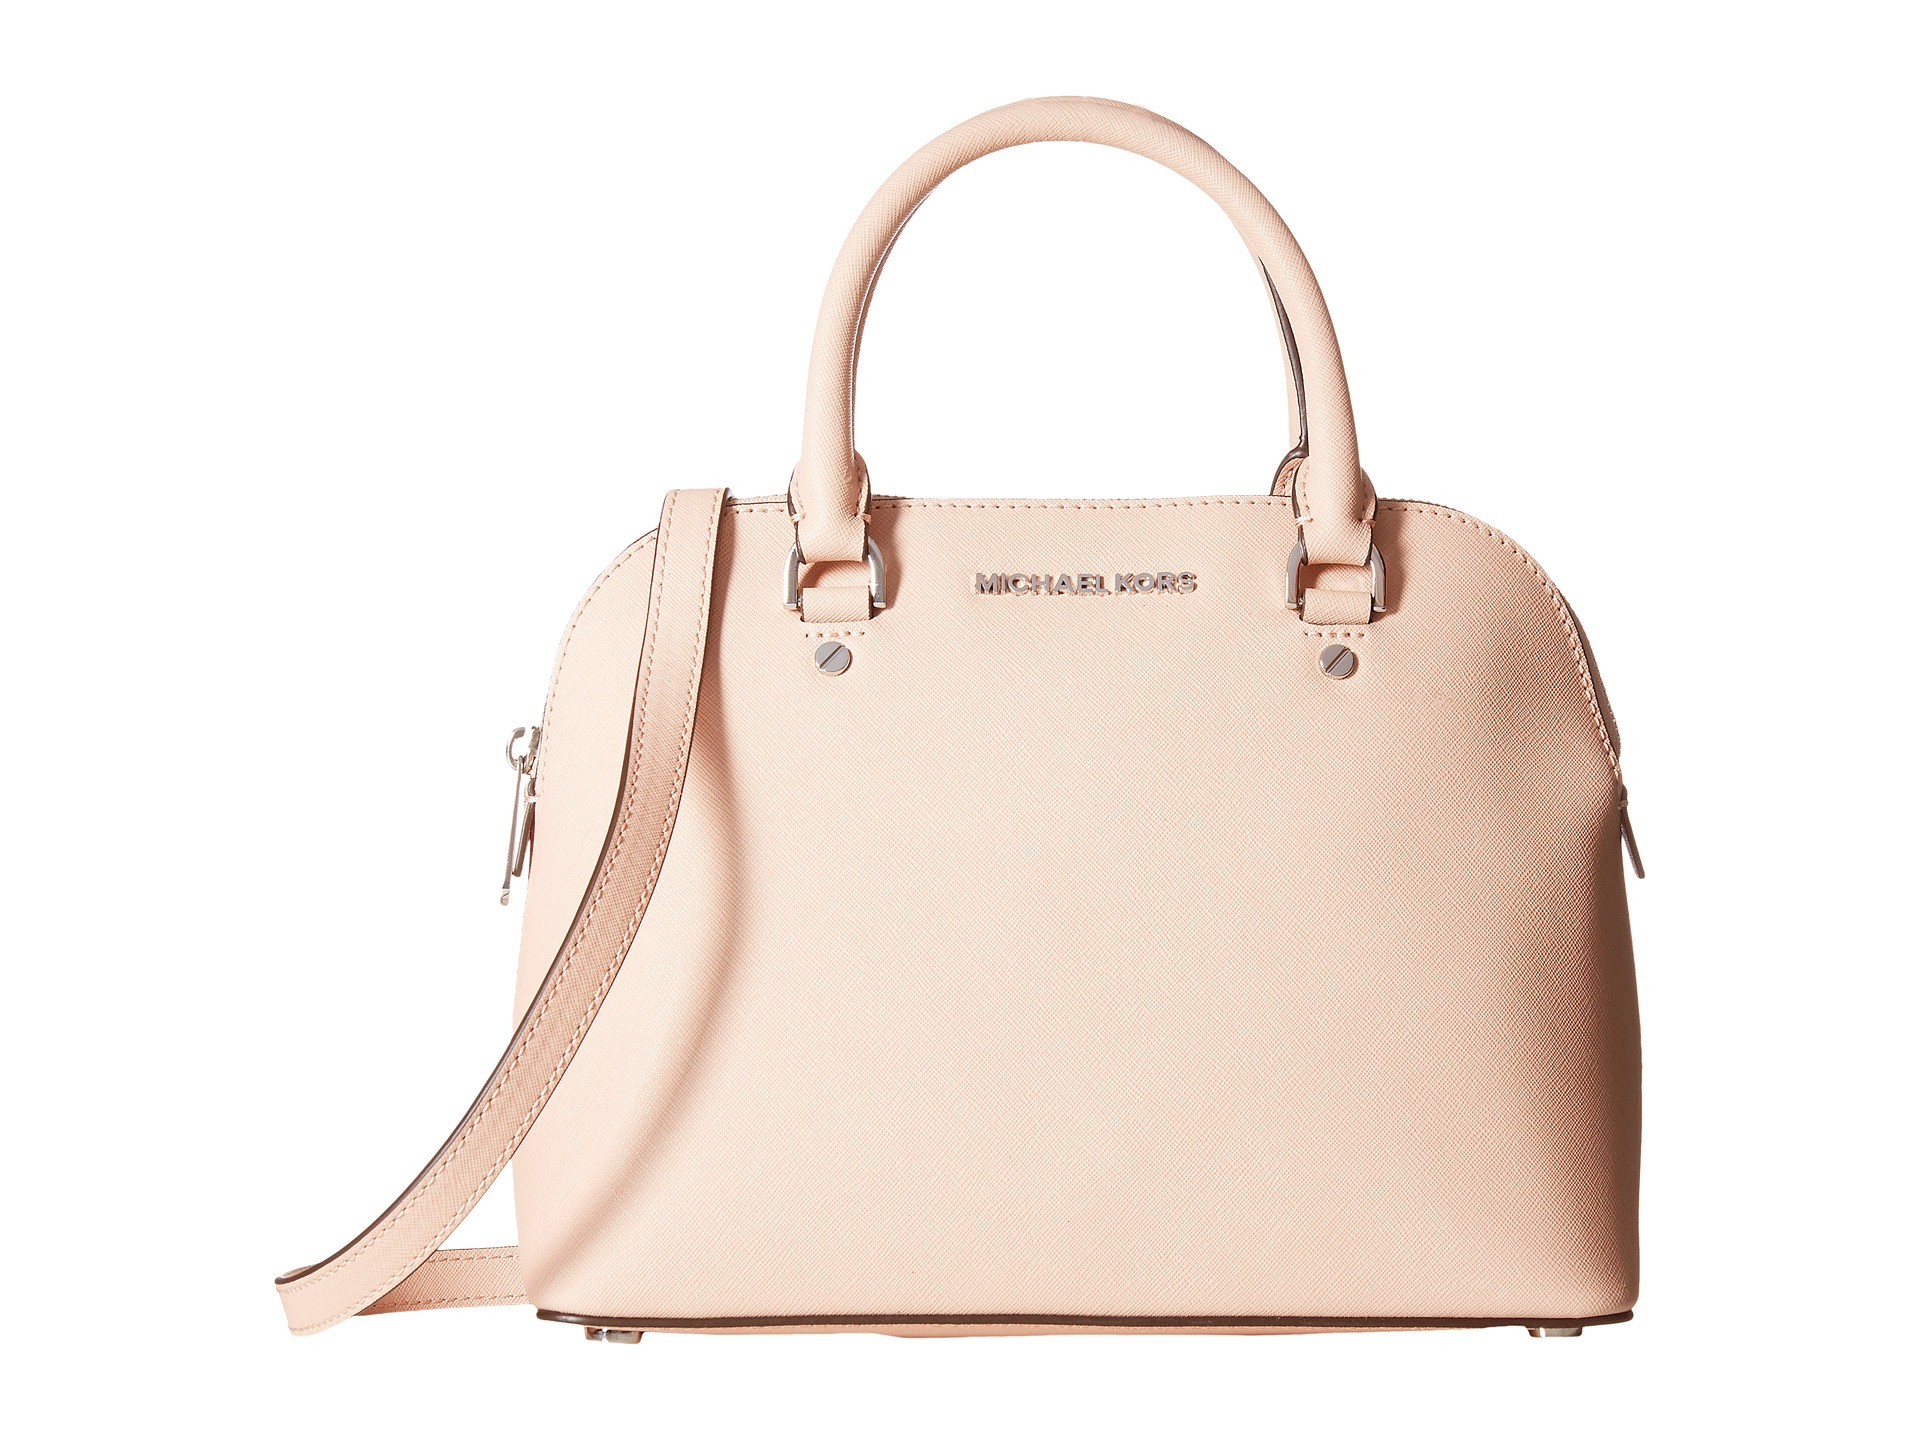 e5df51ef3e ... norway lyst michael michael kors cindy medium dome satchel in pink  3f112 0e504